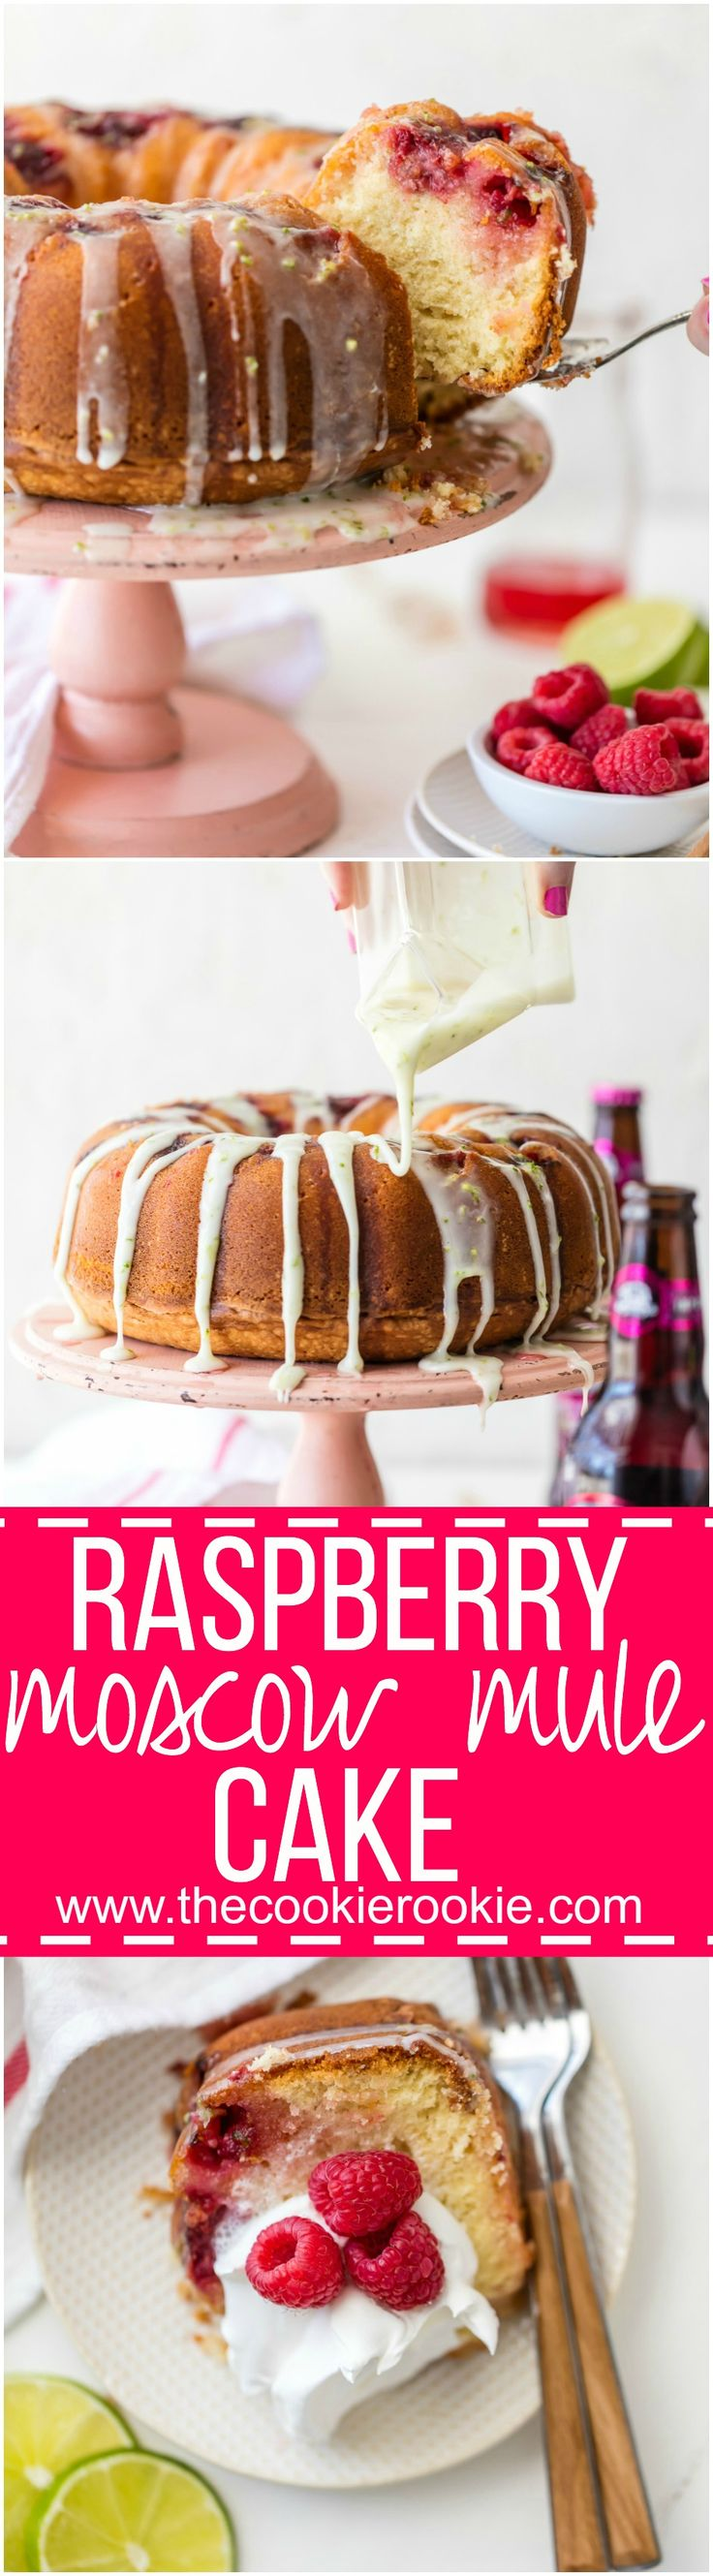 This RASPBERRY MOSCOW MULE CAKE makes life a little bit sweeter! Made with fresh…